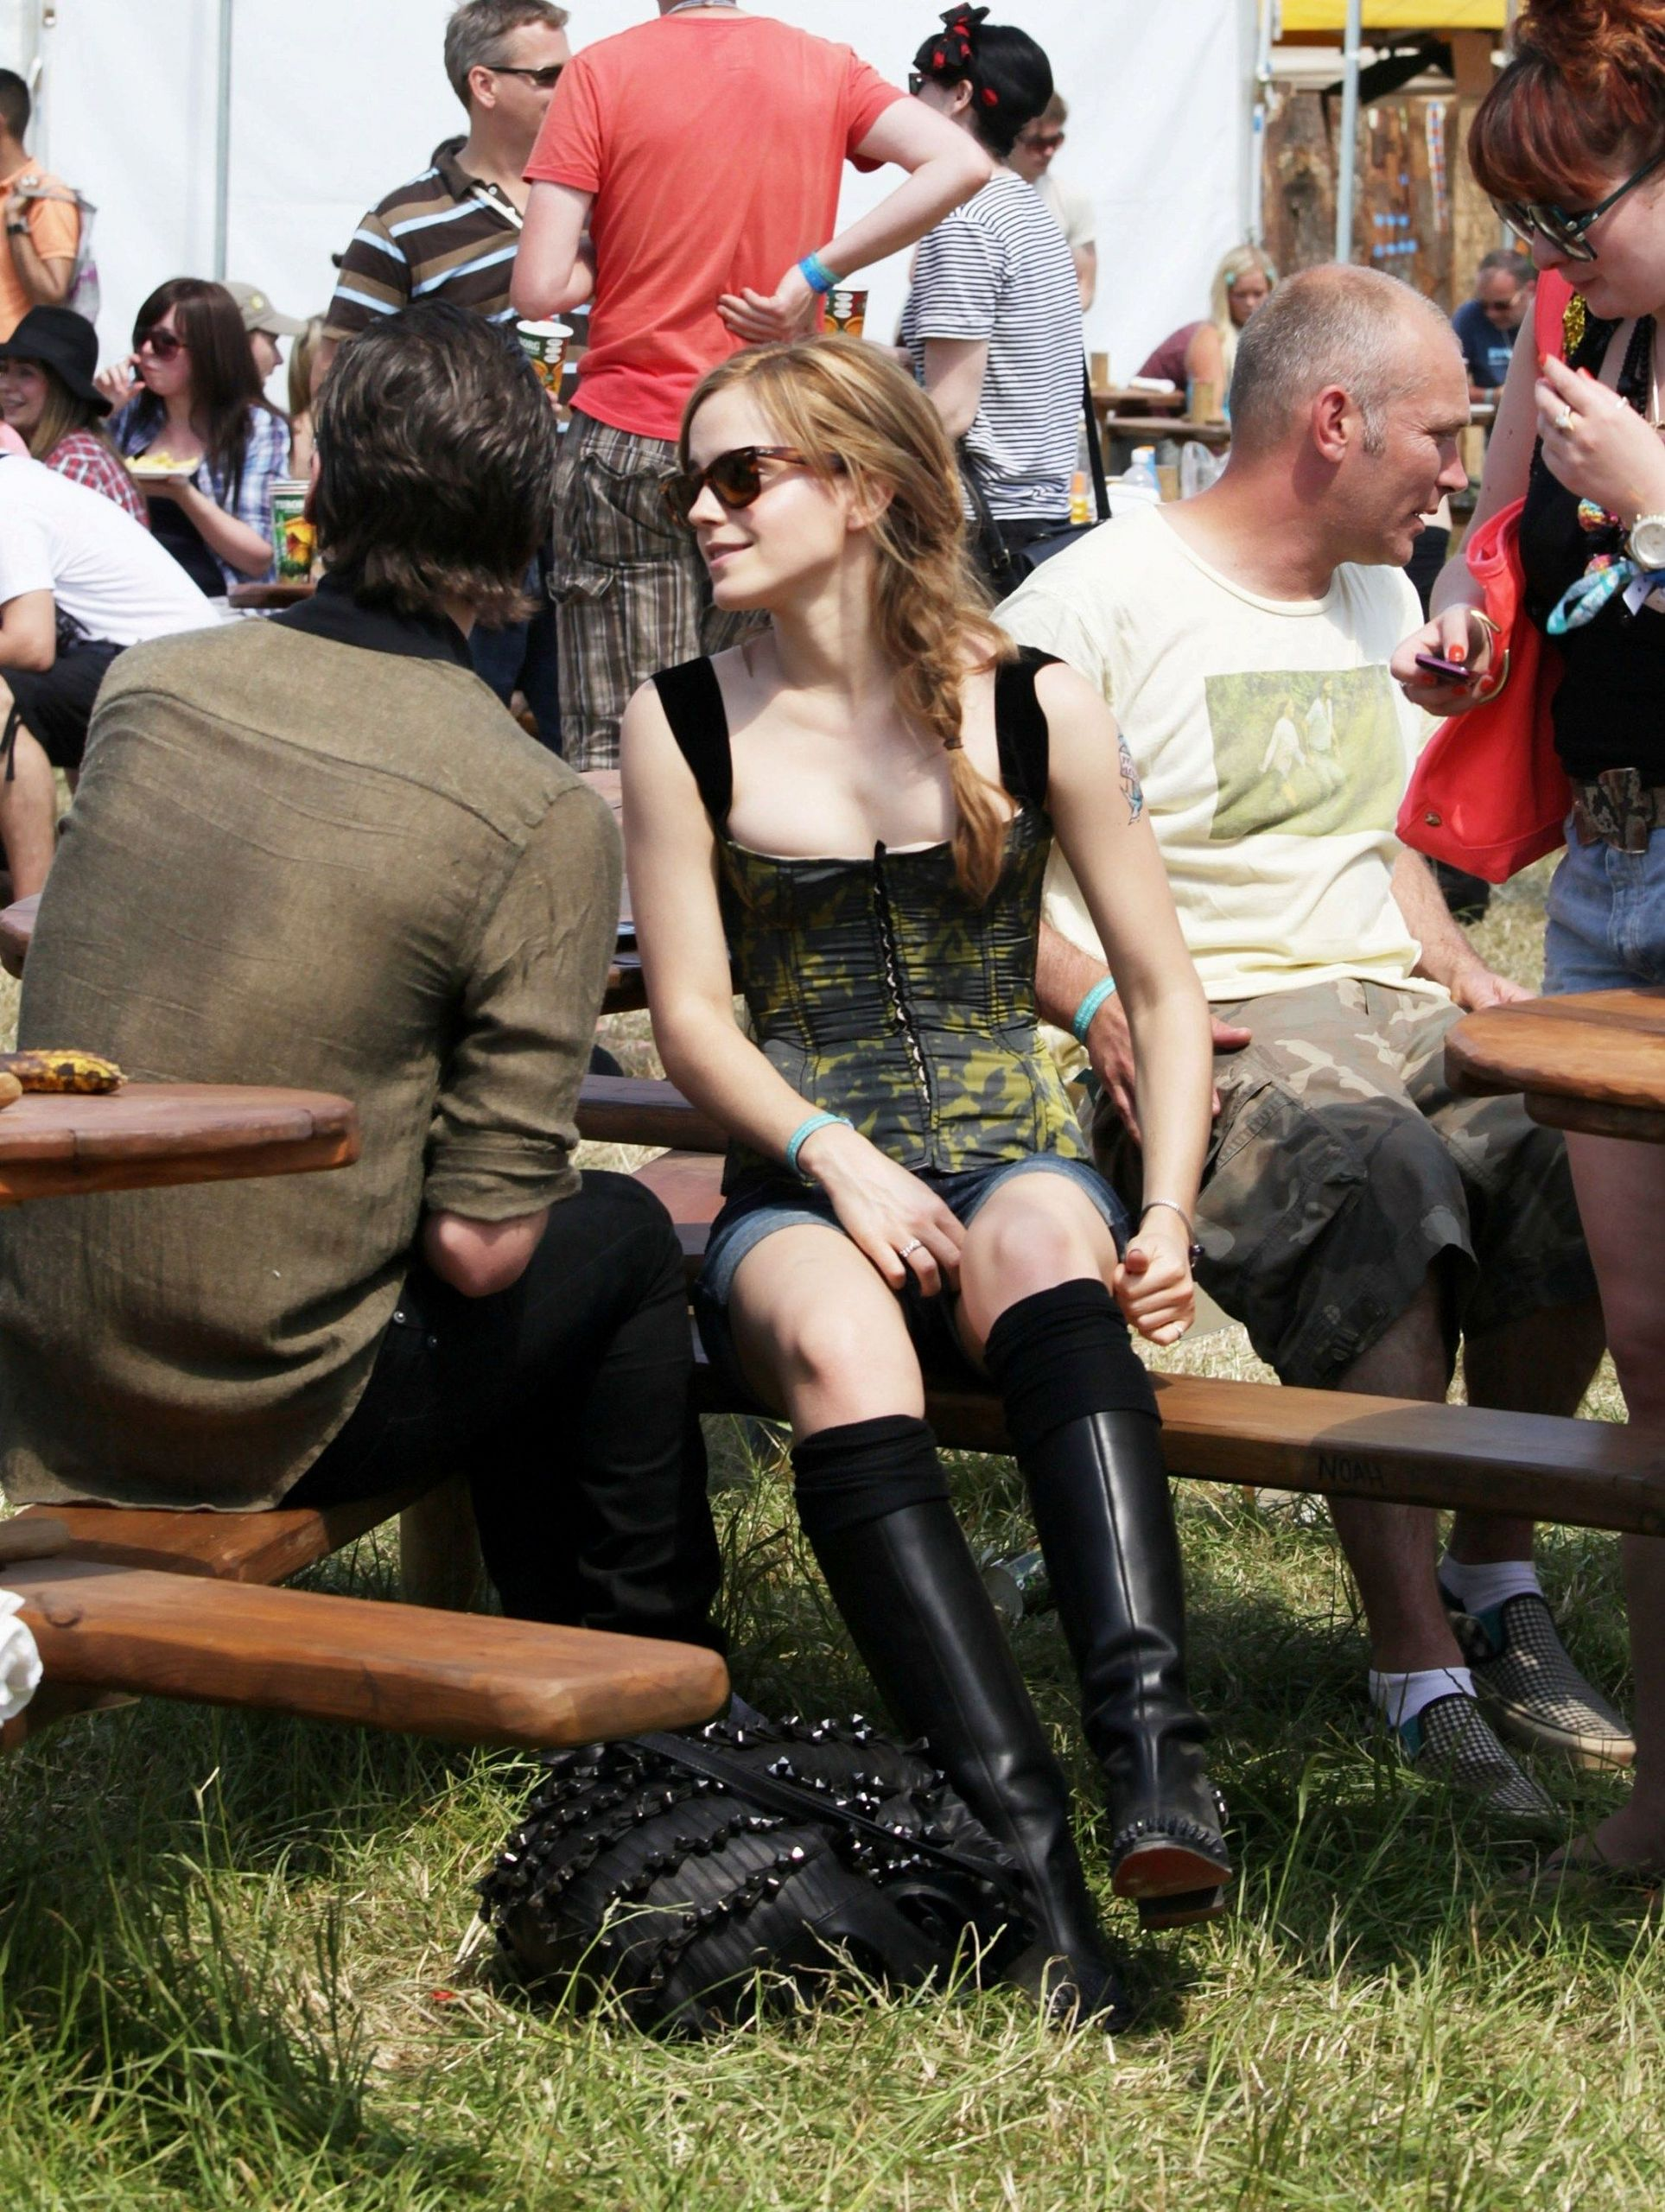 2010 Glastonbury 음악 Festival in Somerset, England (25.06.10) [HQ]